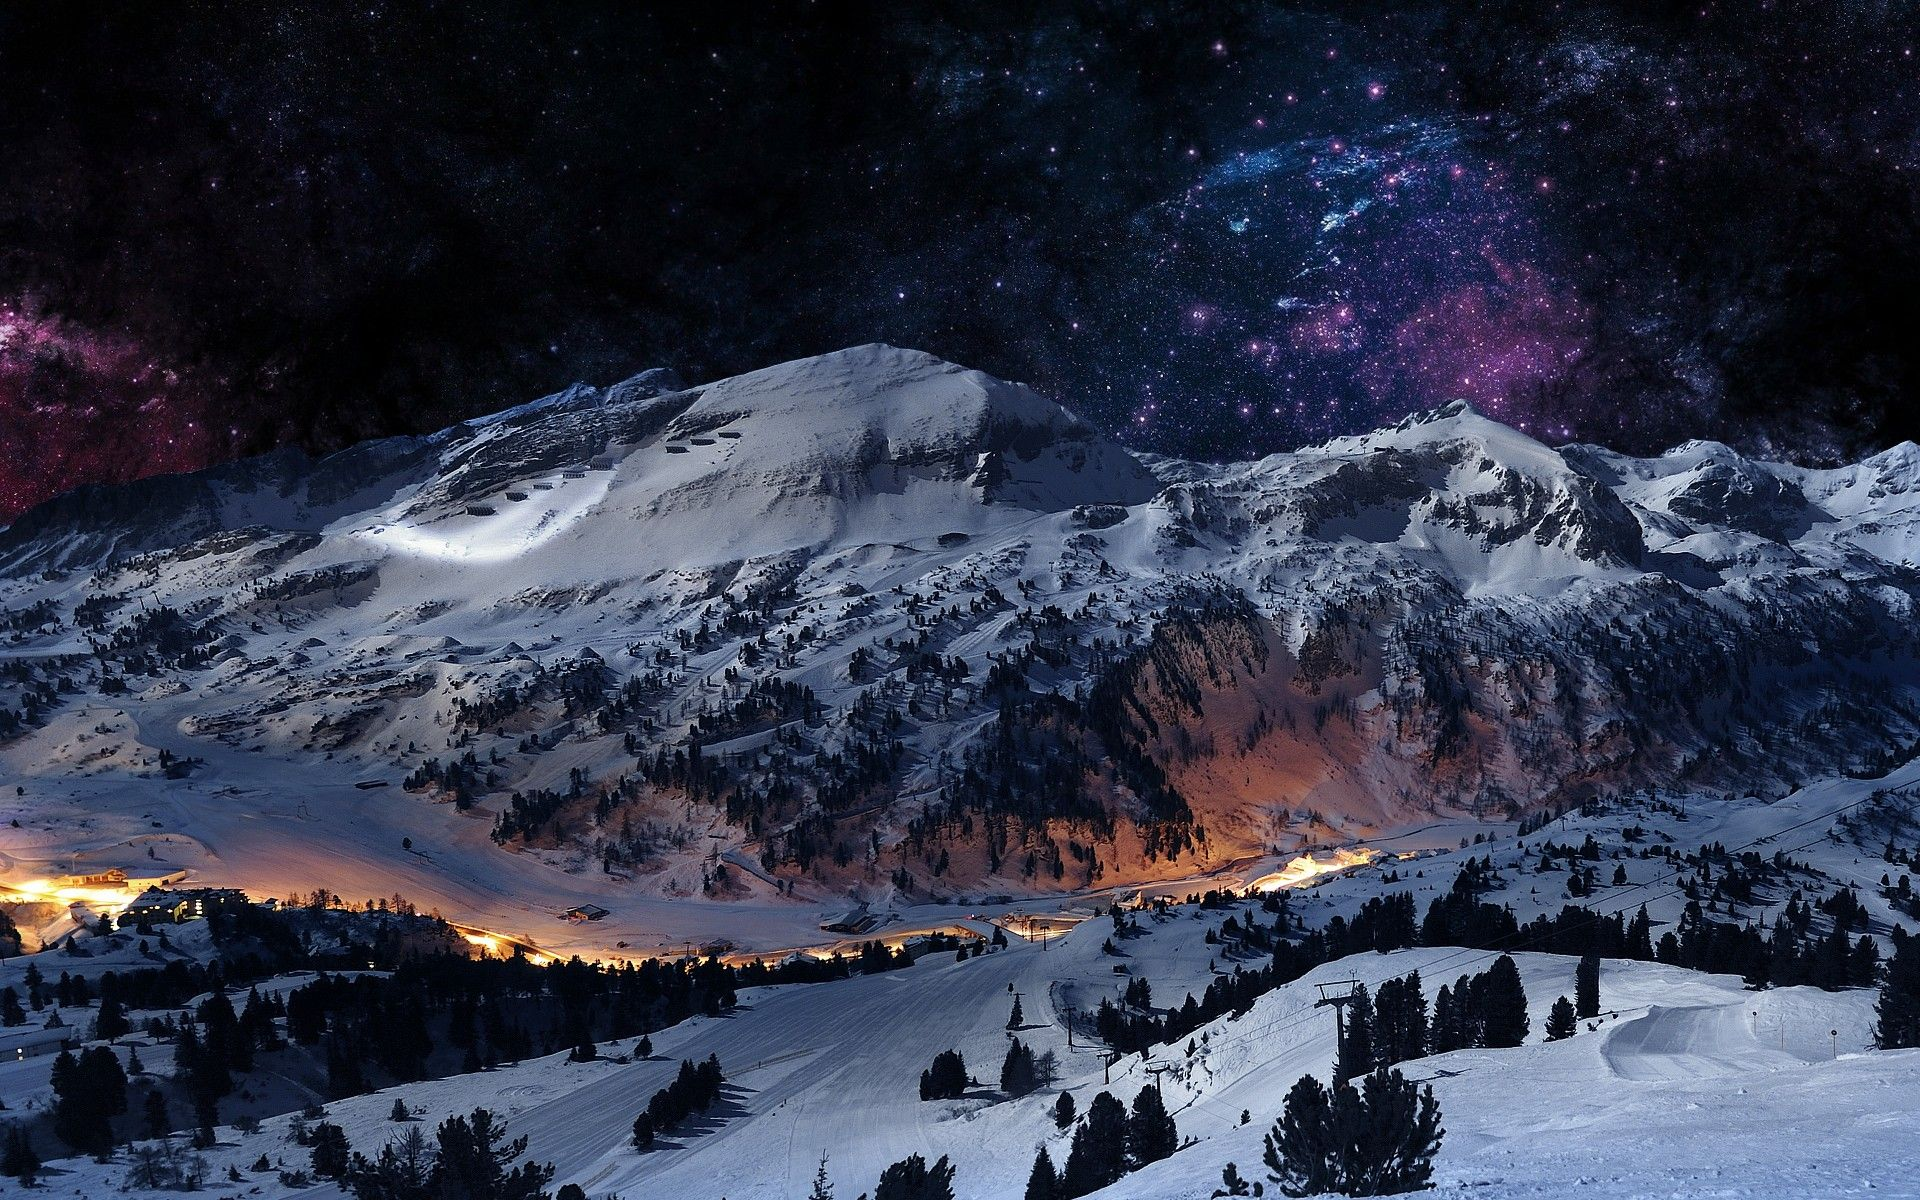 digital art landscapes mountains night sky scene winter hd